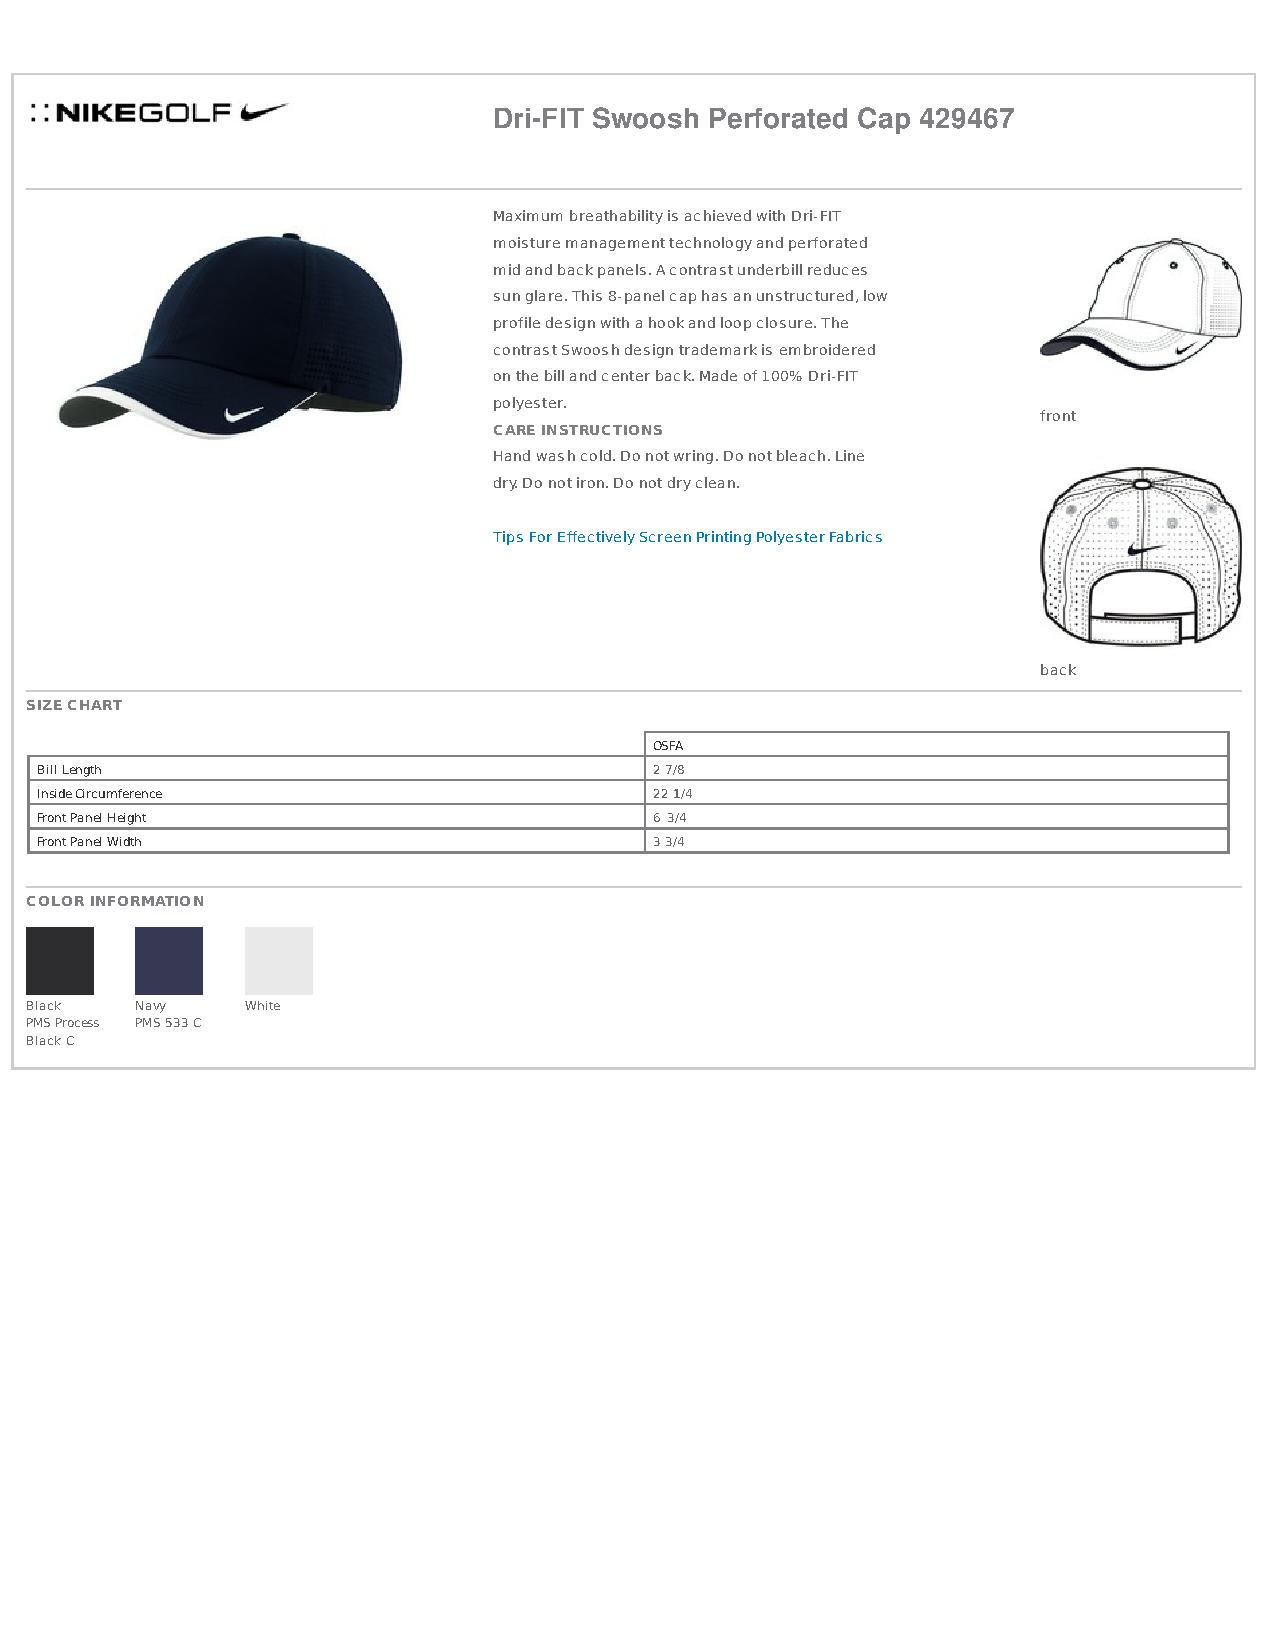 e0c04d0fc8d Nike Golf 429467 Dri-FIT Swoosh Perforated Cap - Headwear